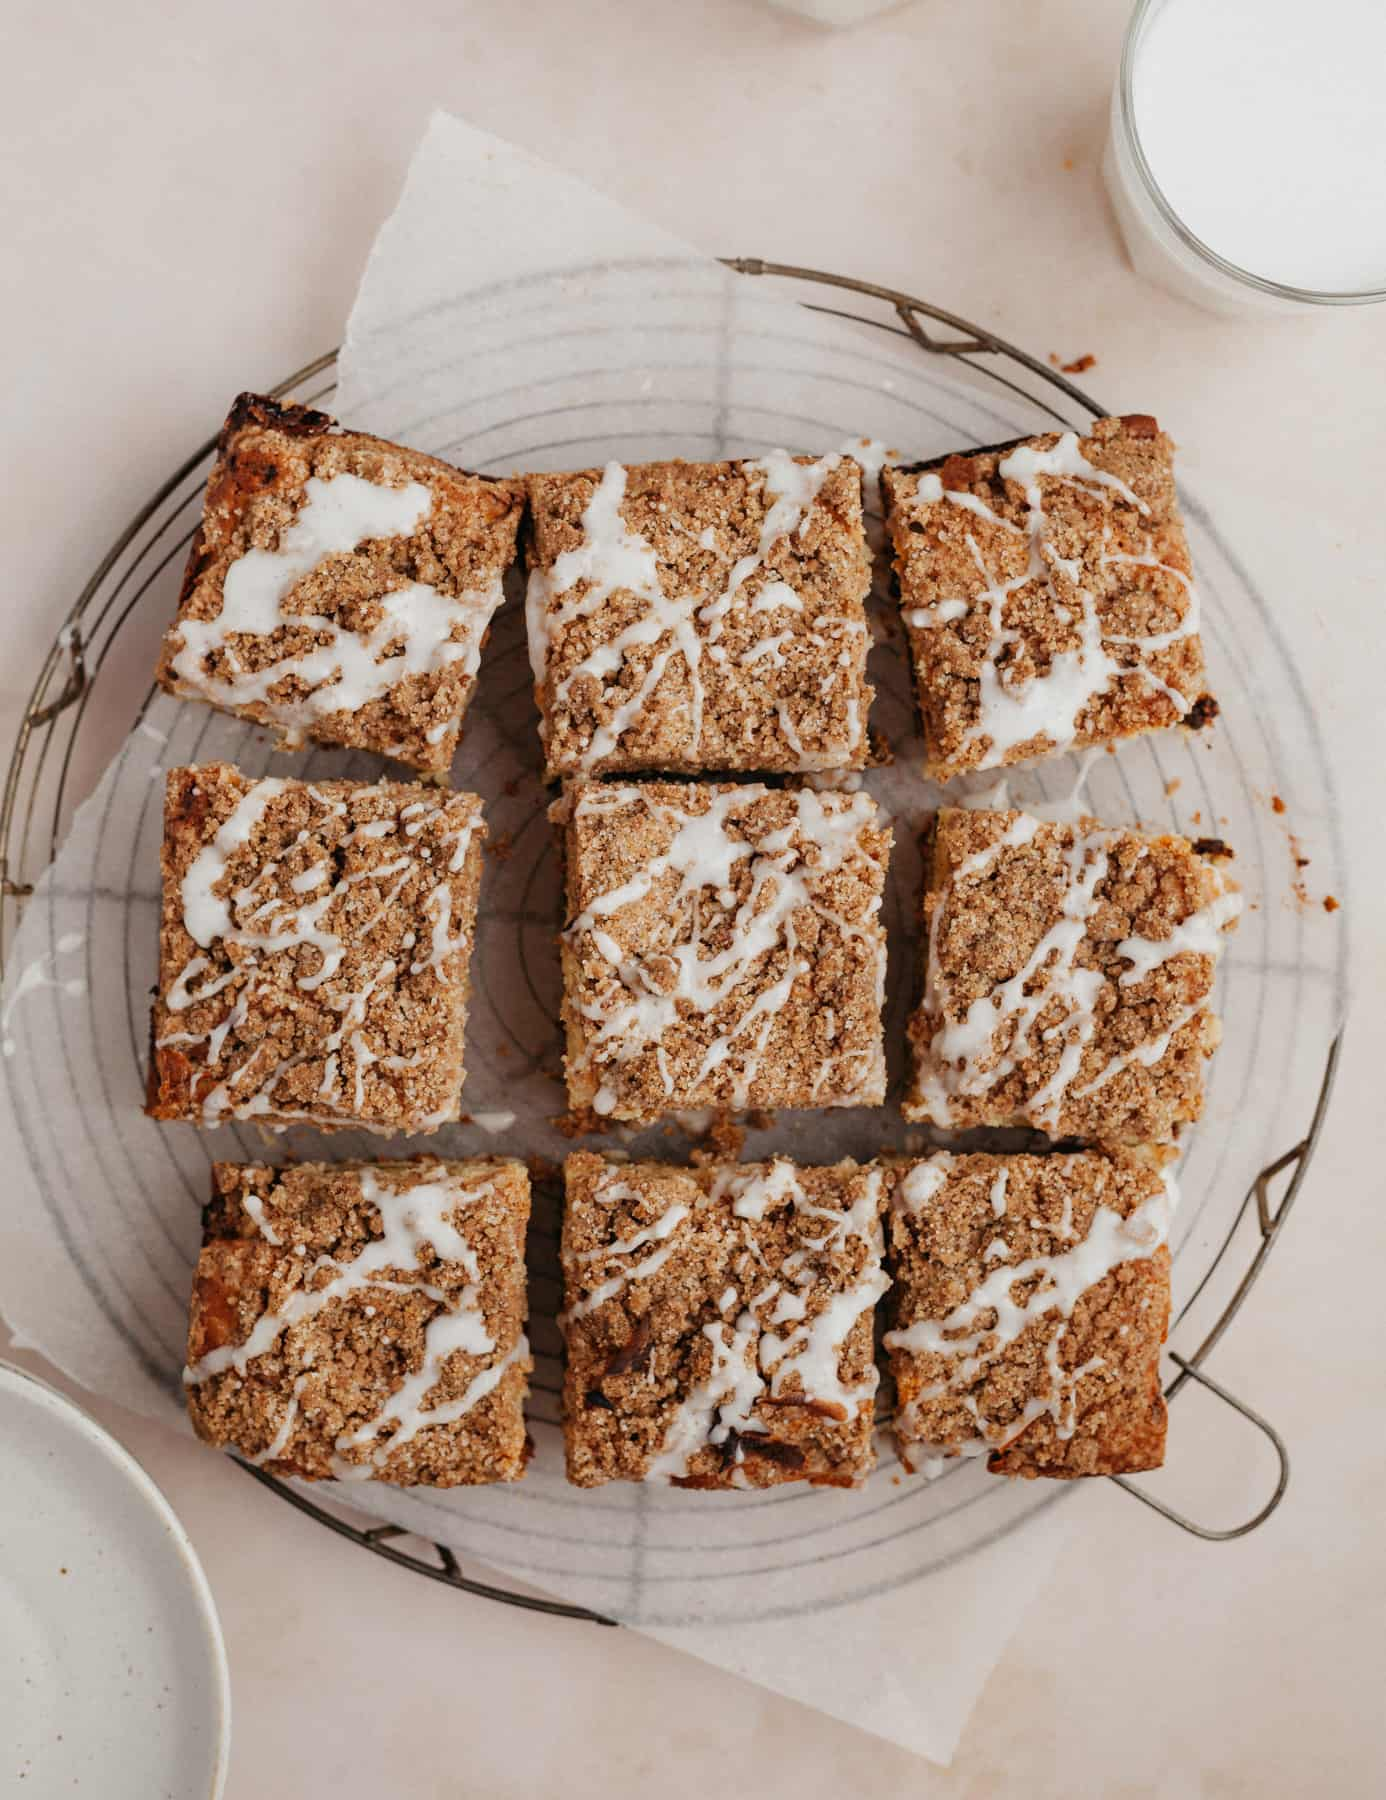 An overhead shot of 9 slices of coffee cake on a wire cooling rack